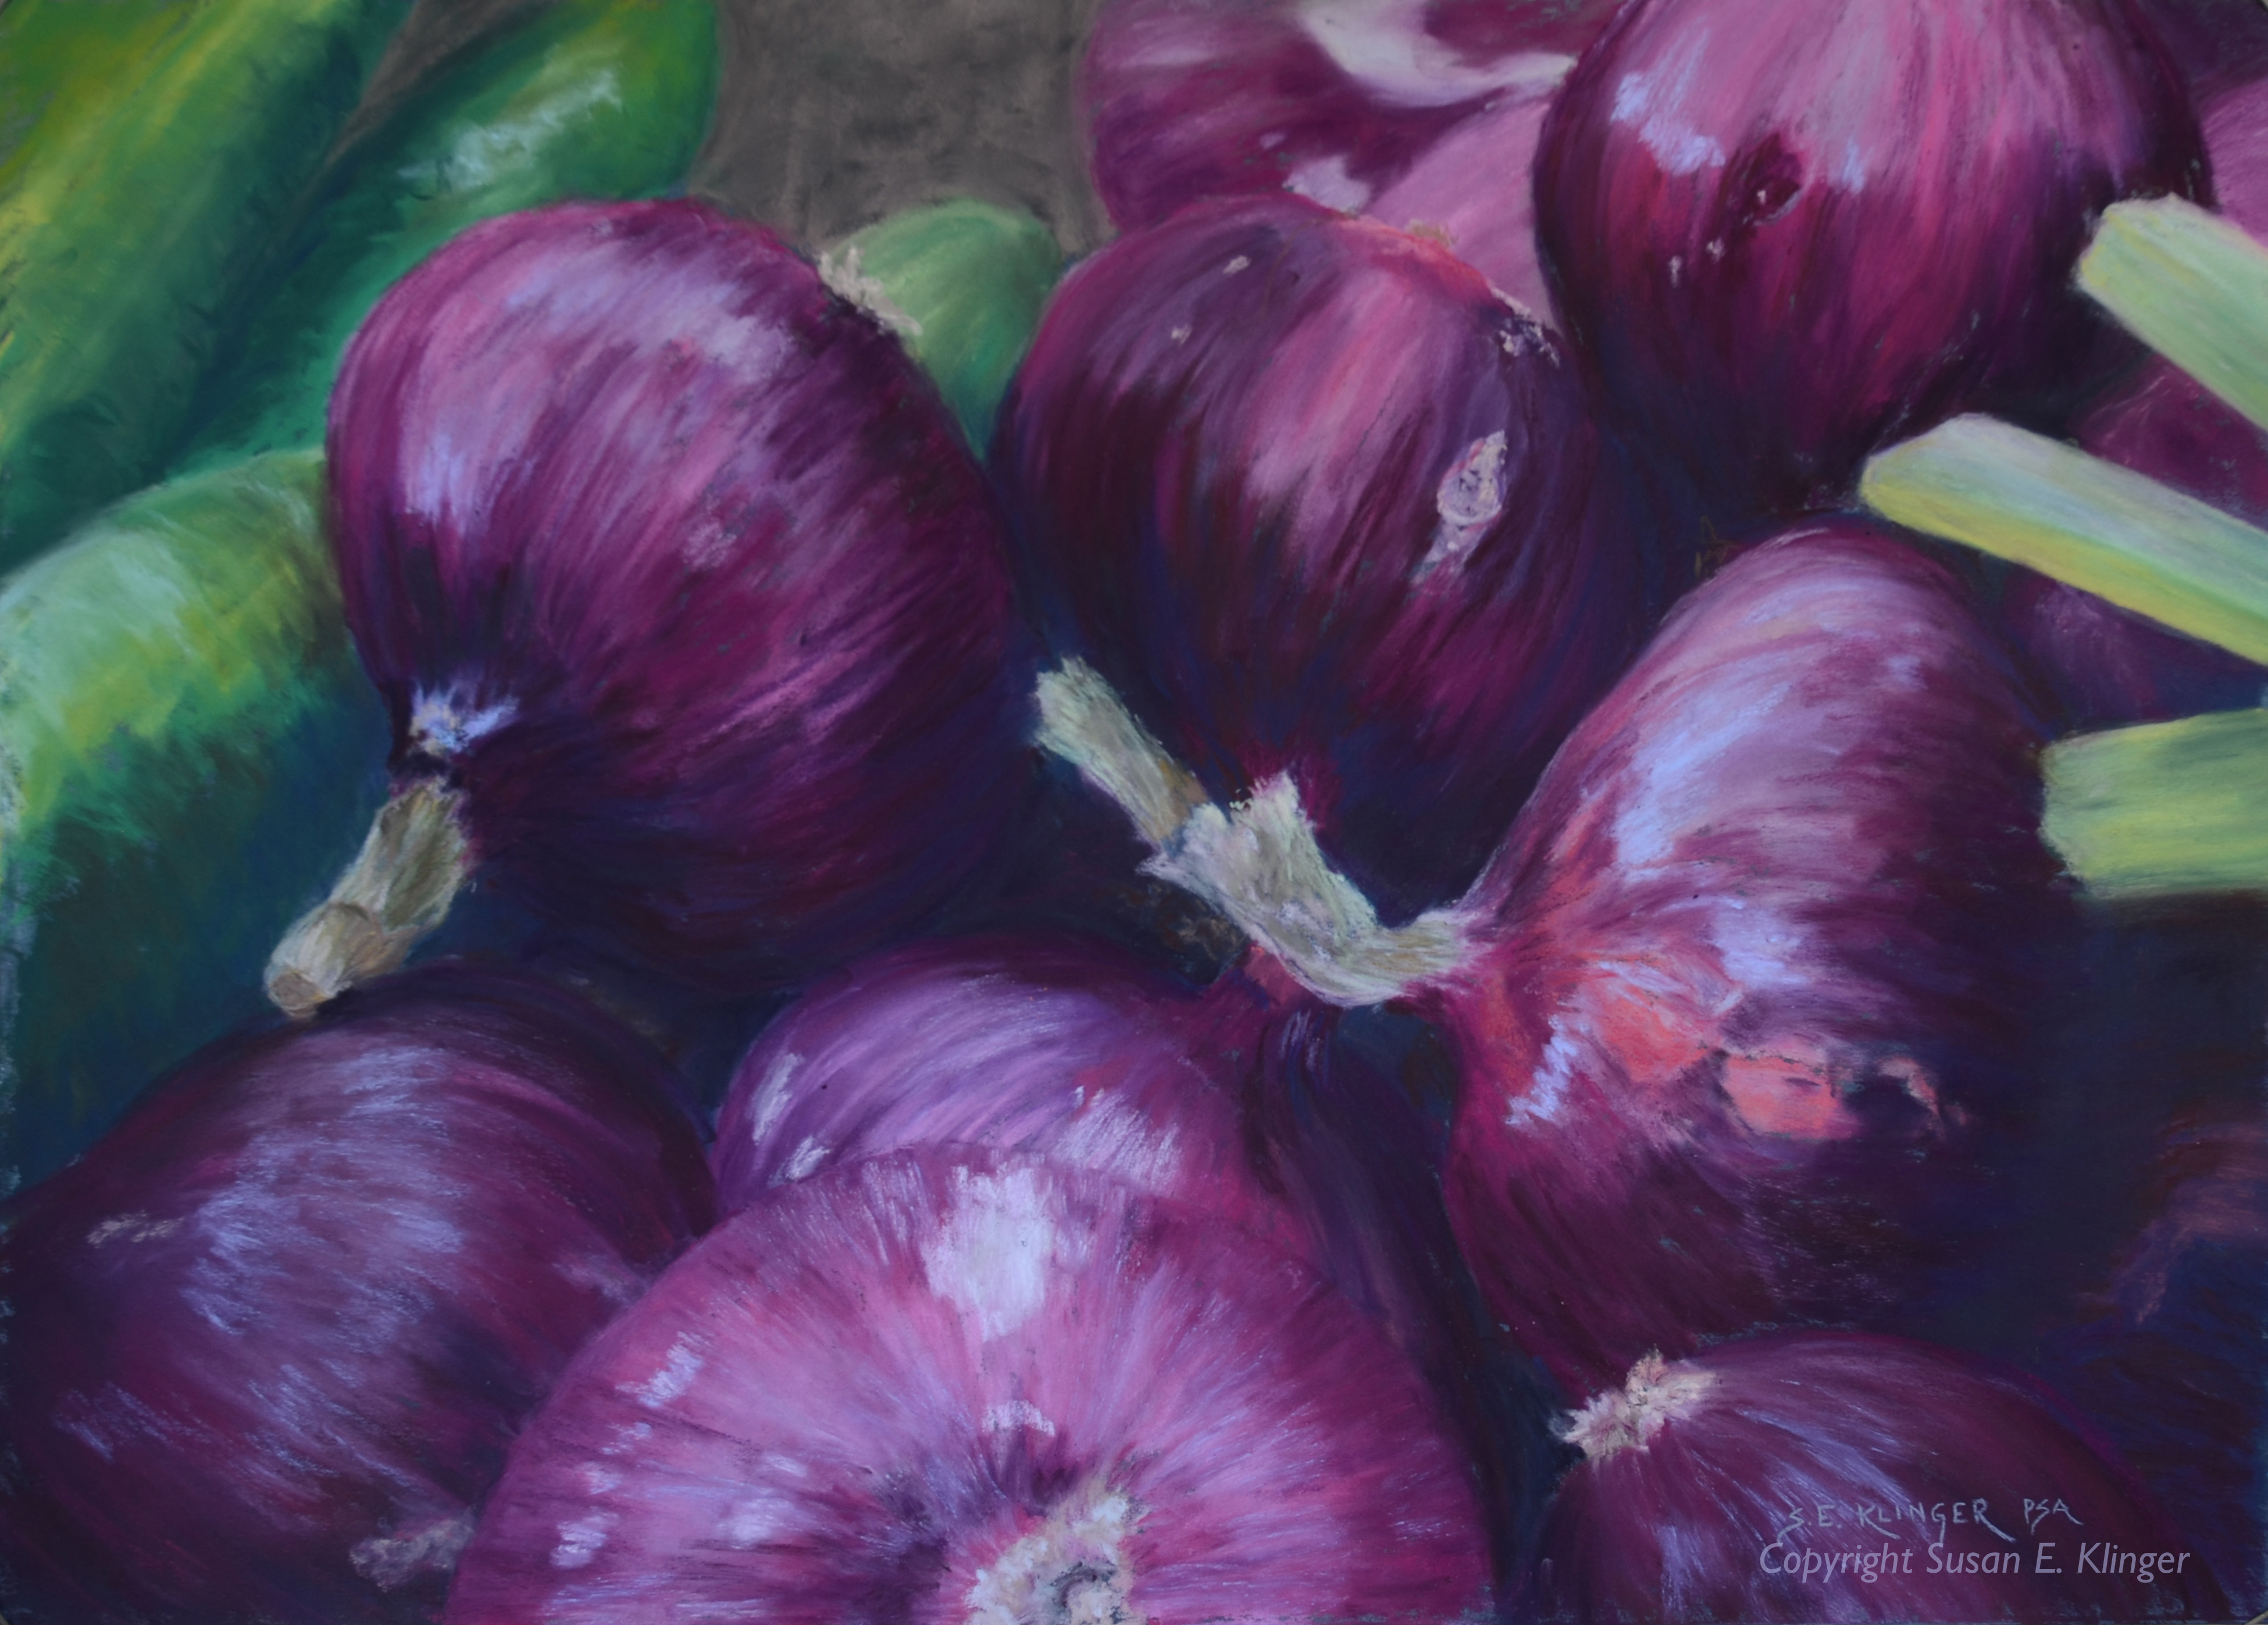 Red Onions_3900c_72